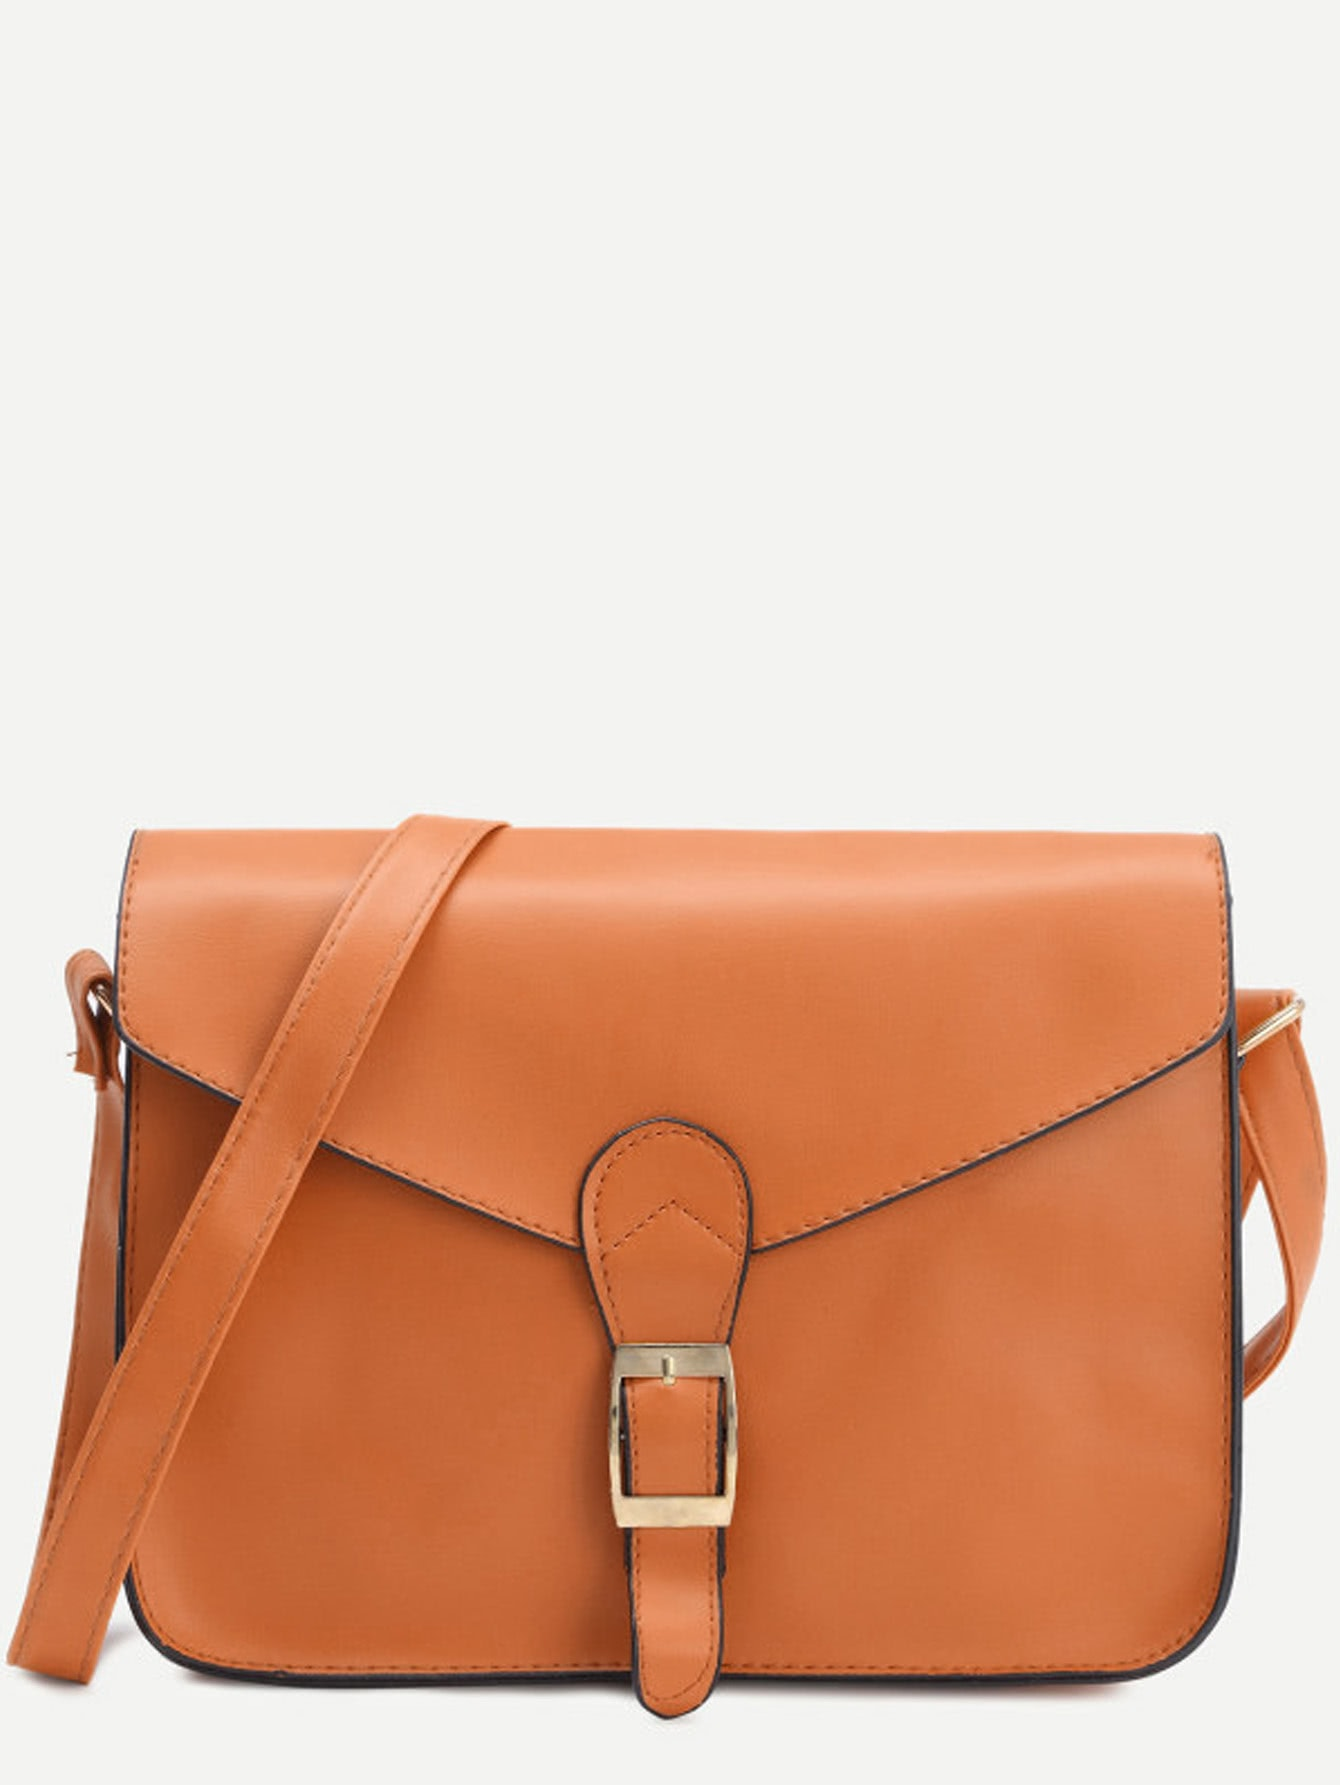 Фото #1: Yellow Faux Leather Flap Strap Buckle Bag